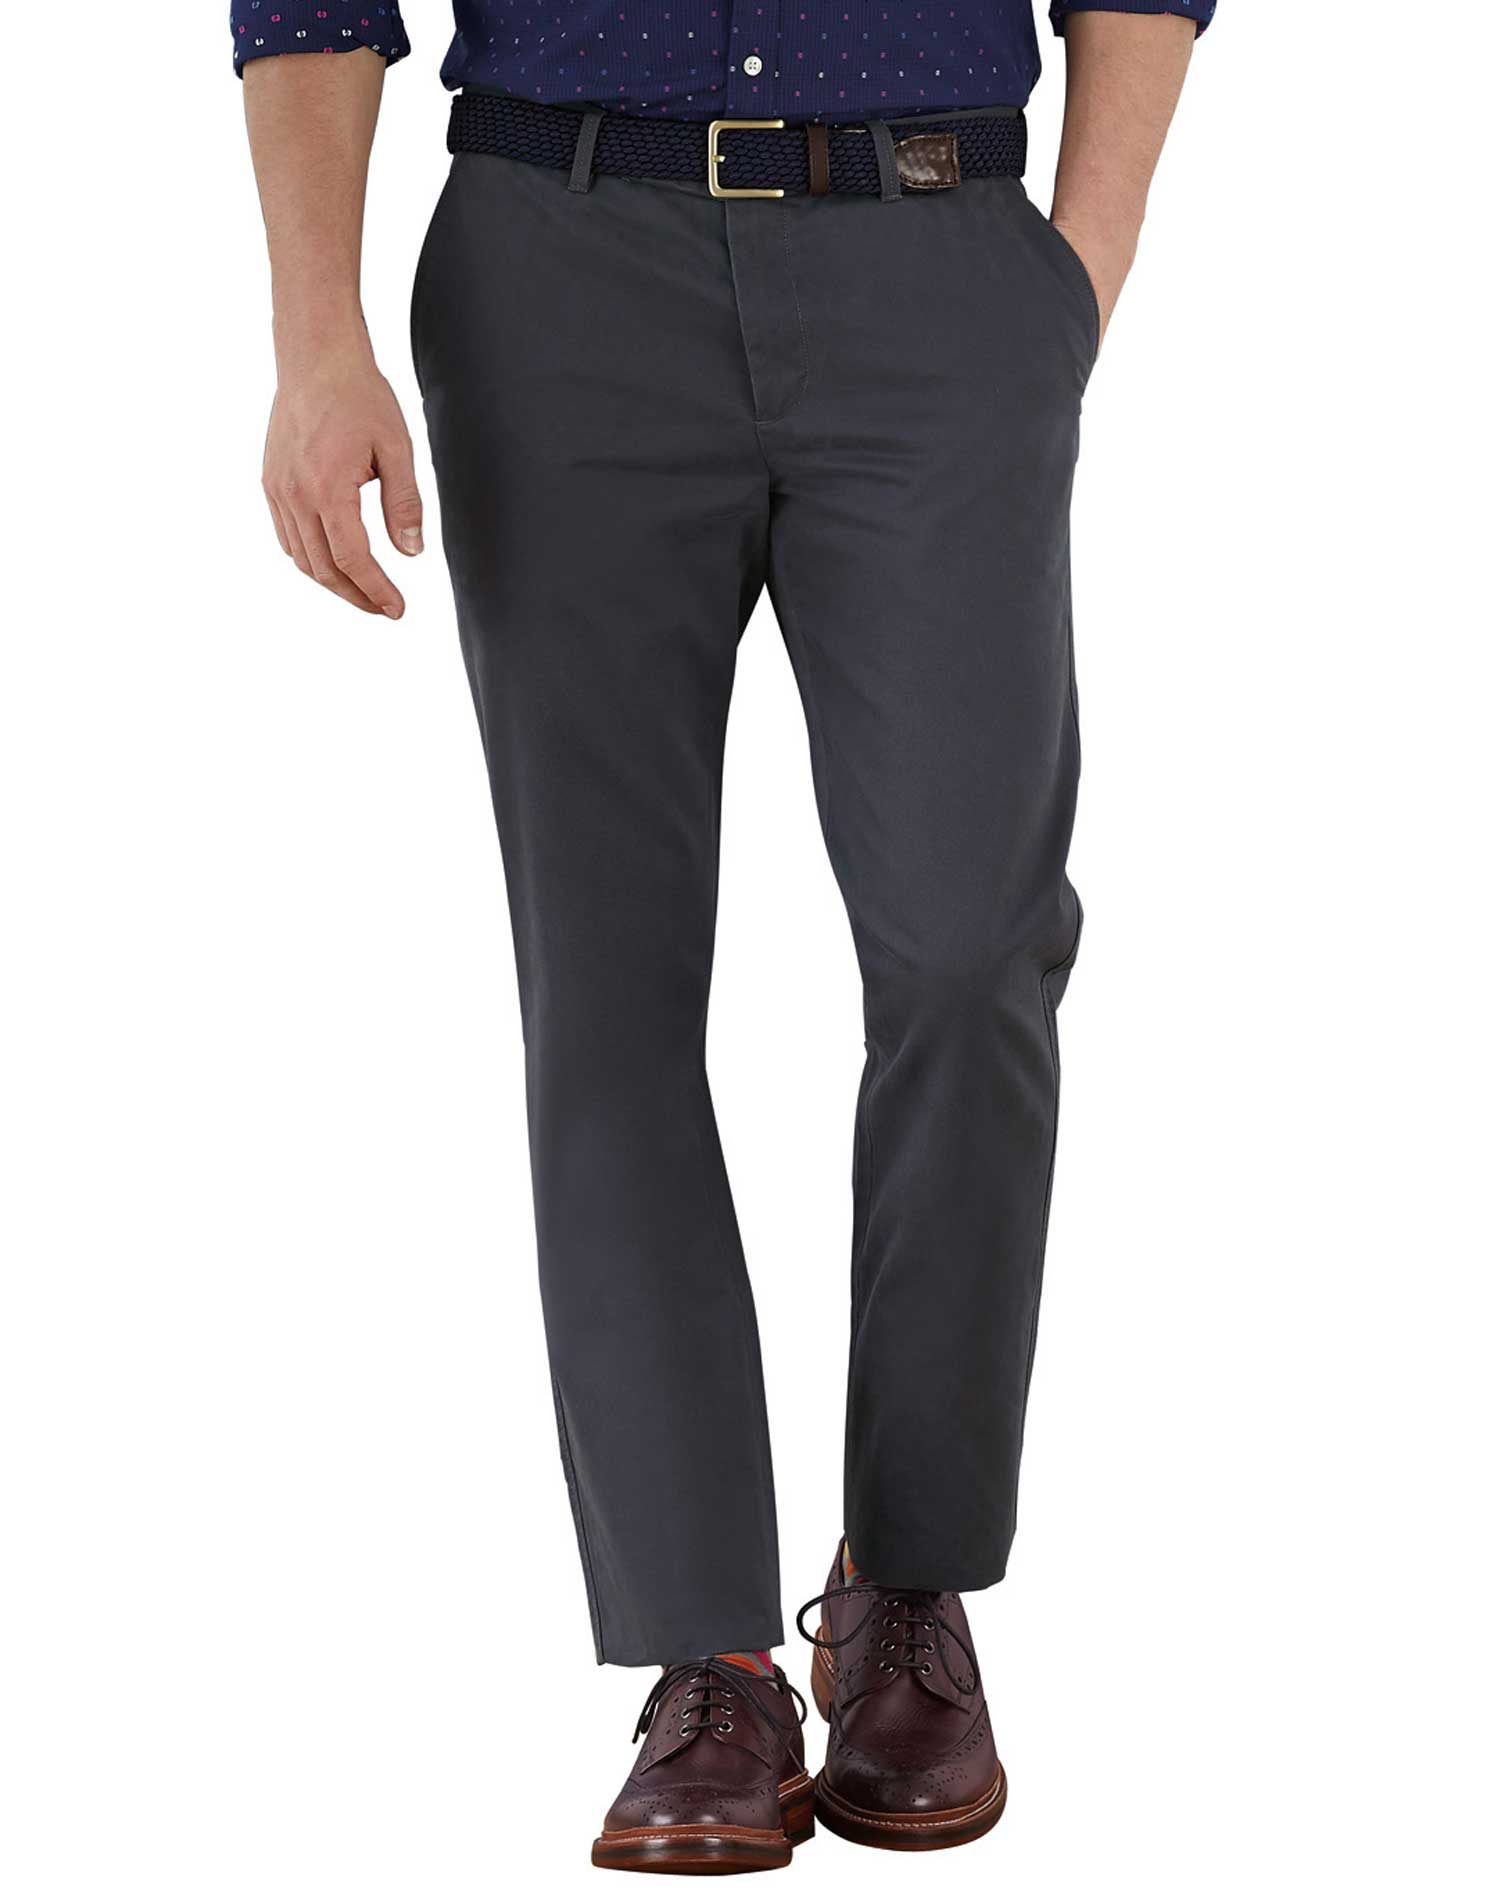 Charcoal Extra Slim Fit Flat Front Cotton Chino Trousers Size W36 L32 by Charles Tyrwhitt